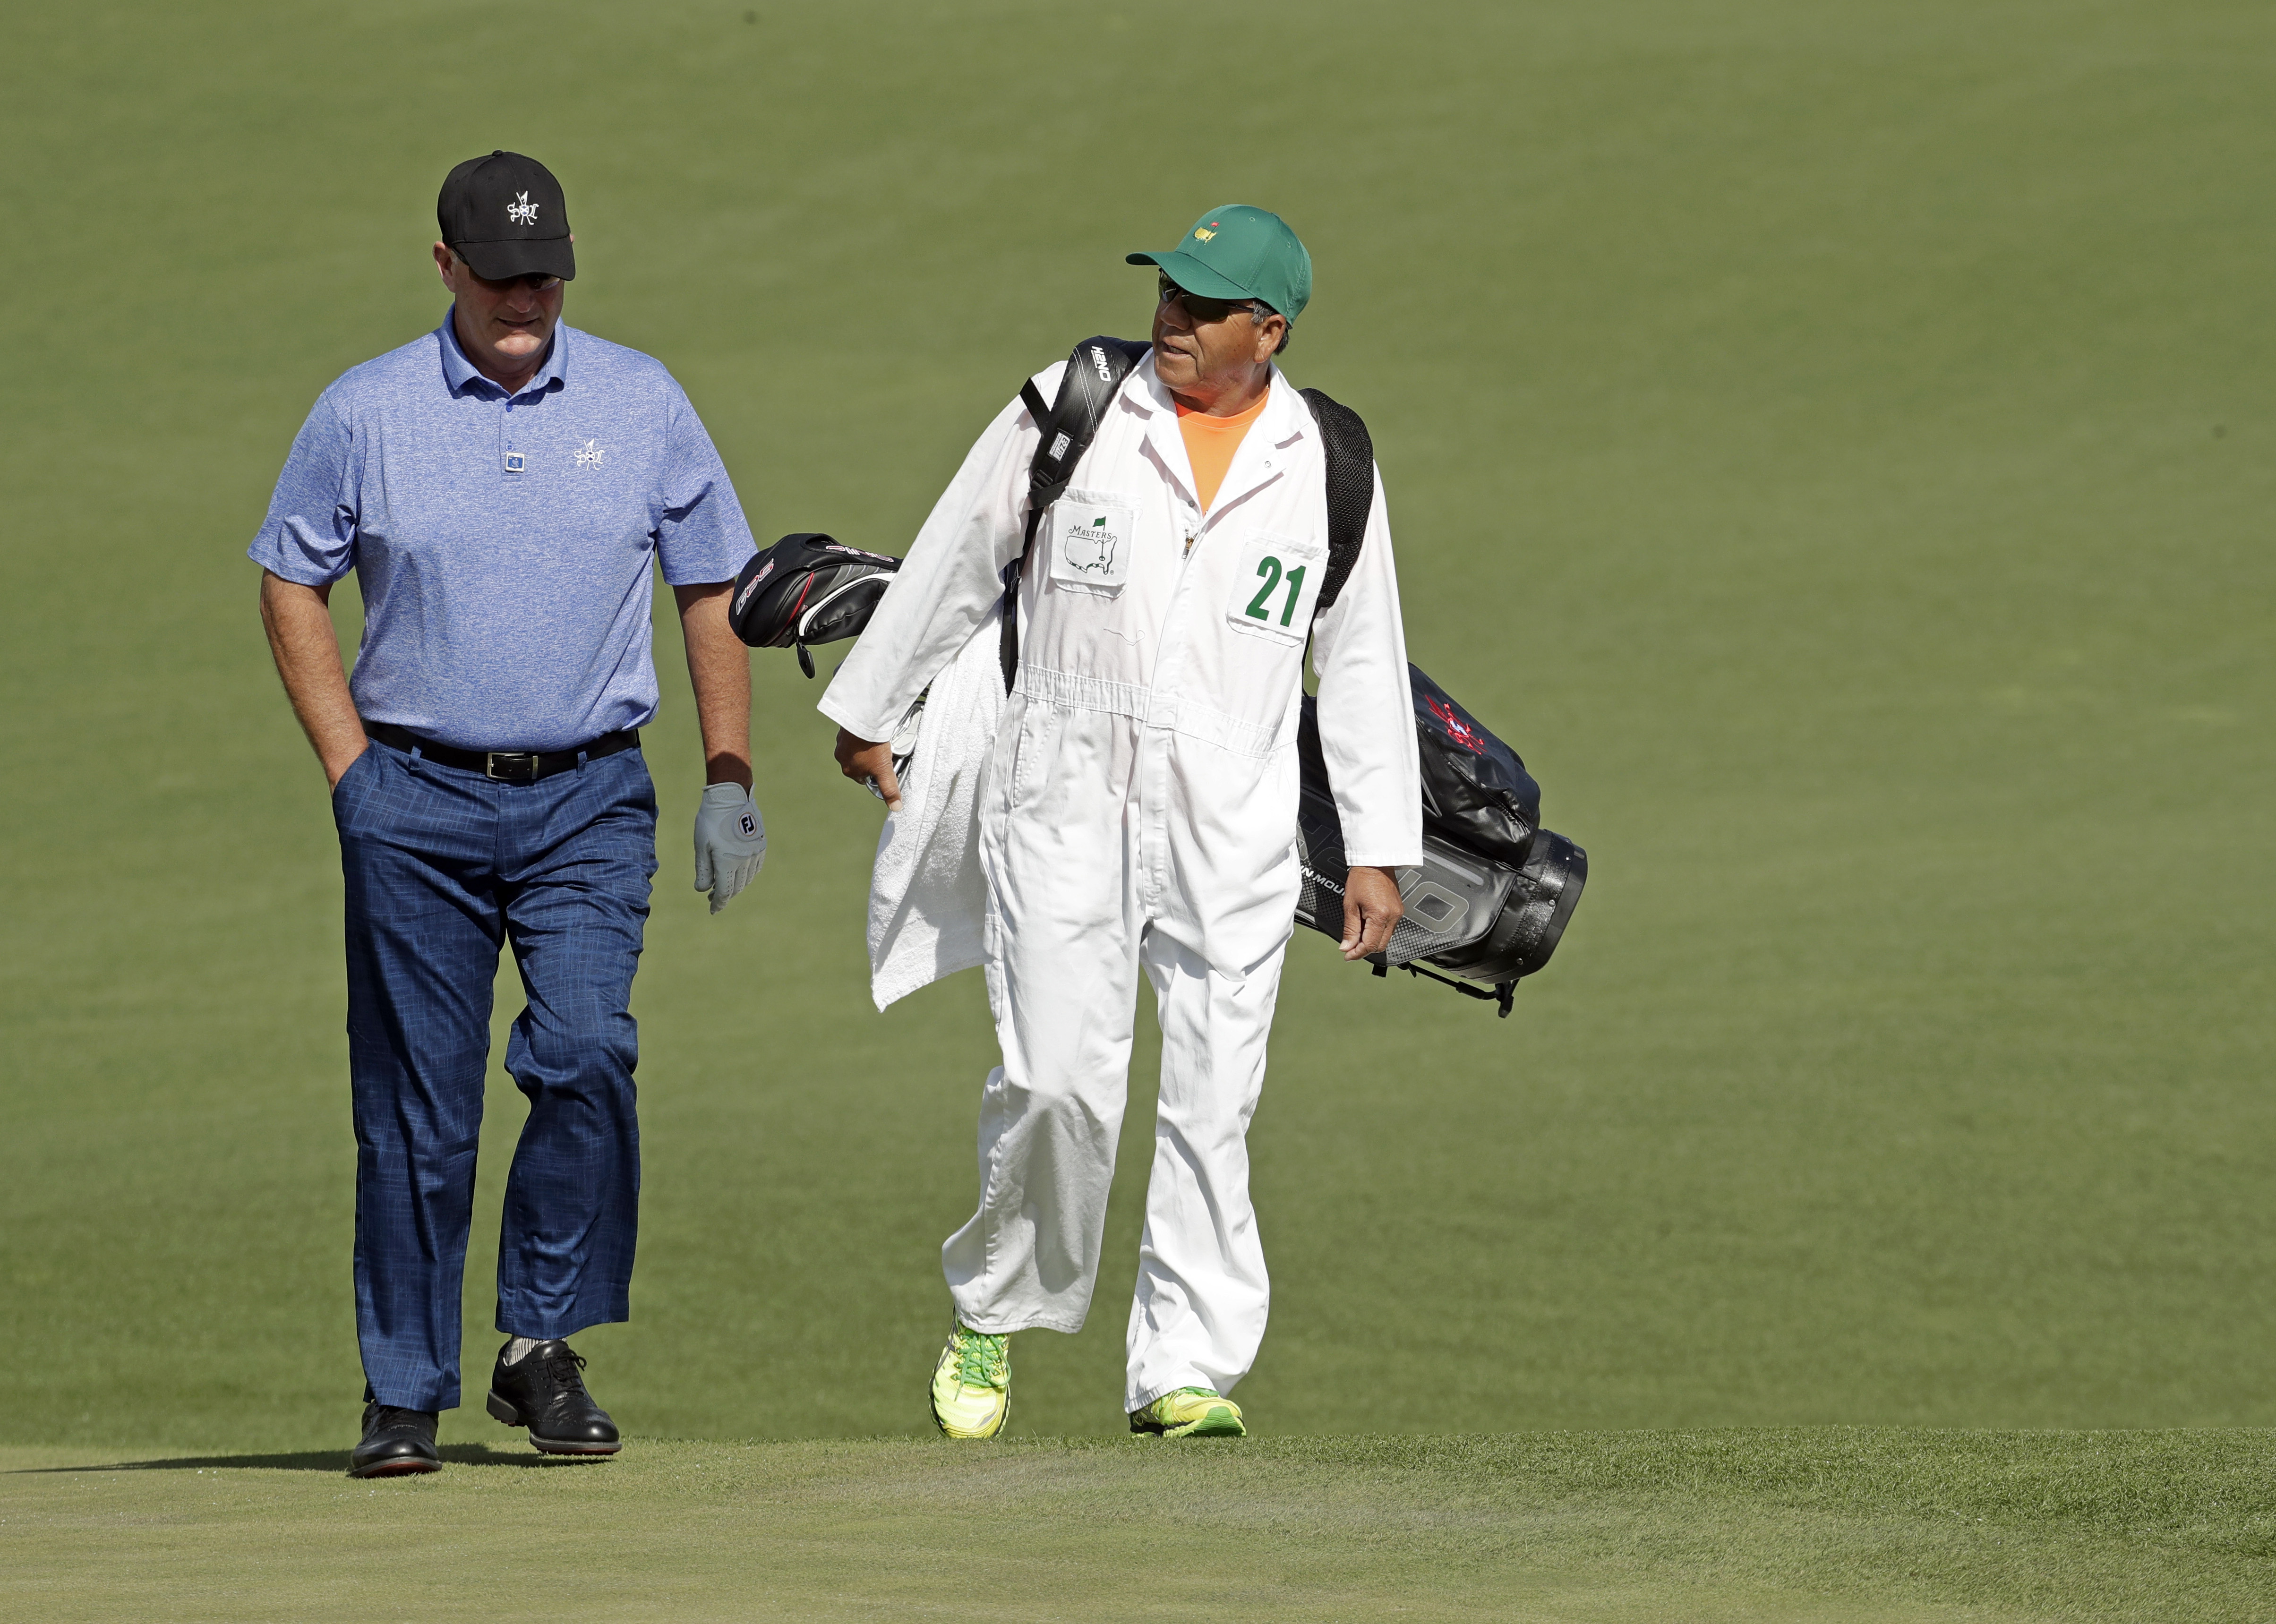 Caddie Eseban Tolledo walks with Sandy Lyle, of Scotland, on the second hole during a practice round for the Masters golf tournament Wednesday, April 6, 2016, in Augusta, Ga. (AP Photo/Charlie Riedel)